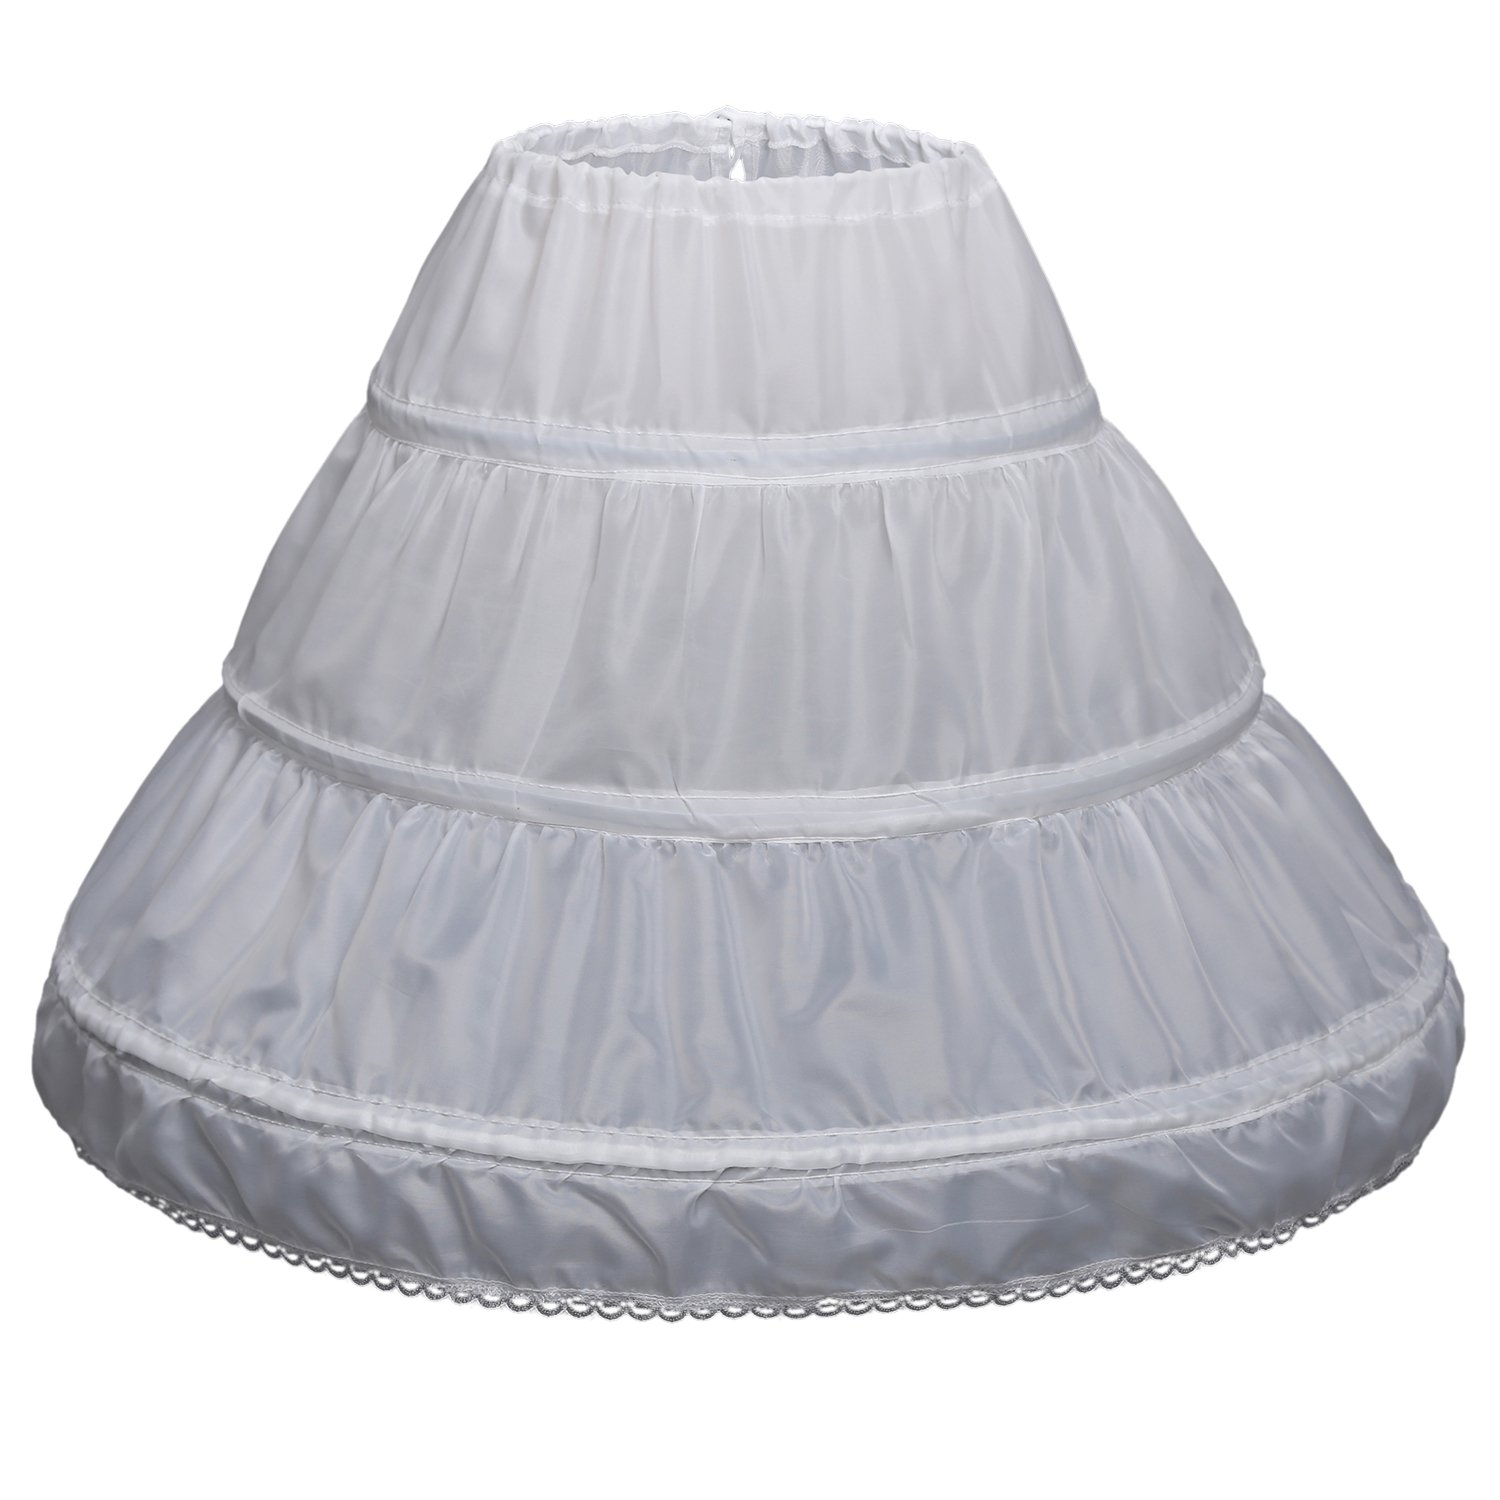 Carat Girls' 3 Hoops Petticoat Full Slip Flower Girl Crinoline Skirt(7-13 yrs,White)